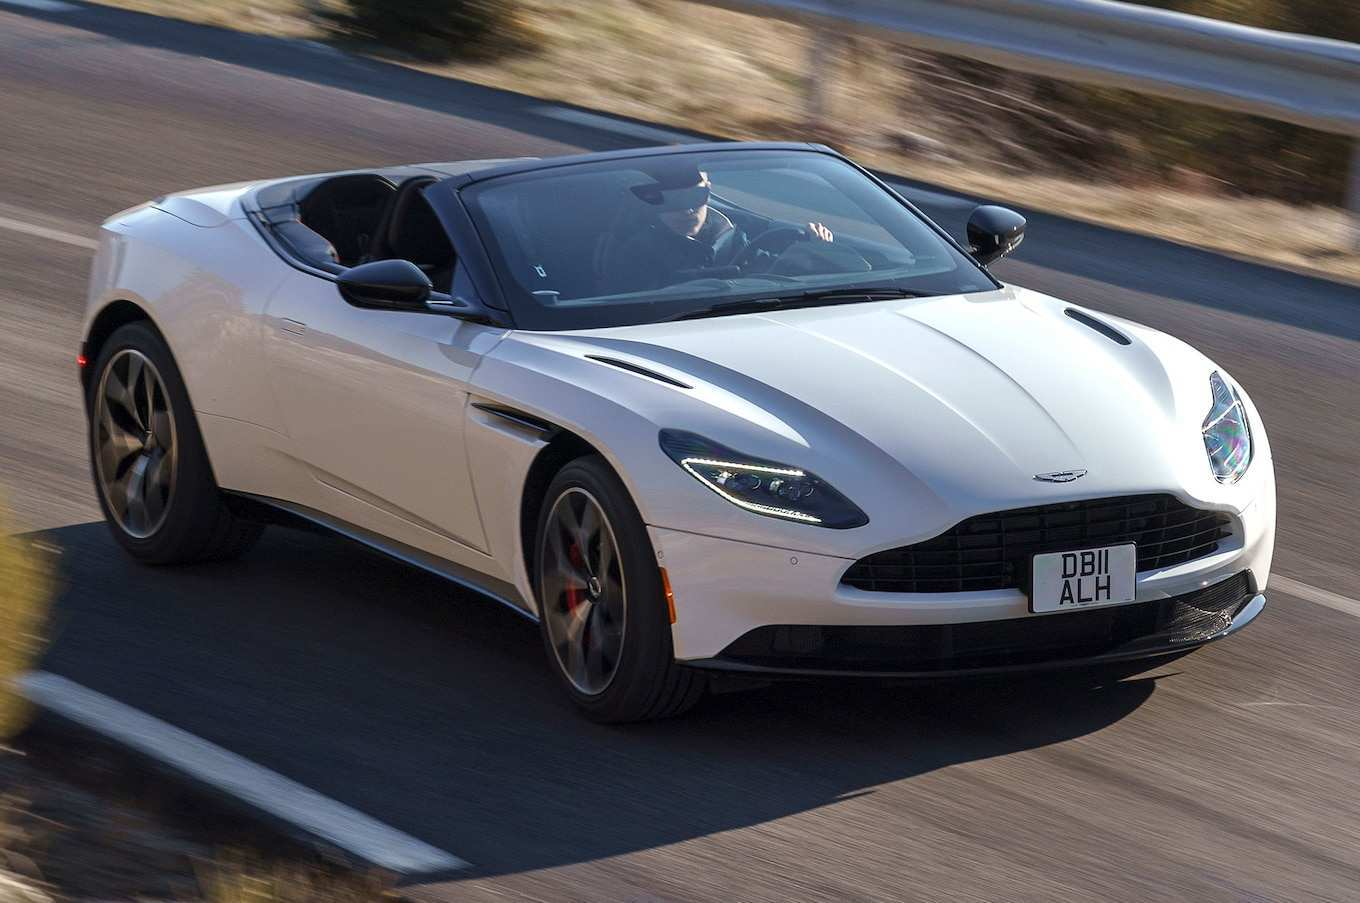 84 New 2019 Aston Martin Db11 Performance and New Engine for 2019 Aston Martin Db11